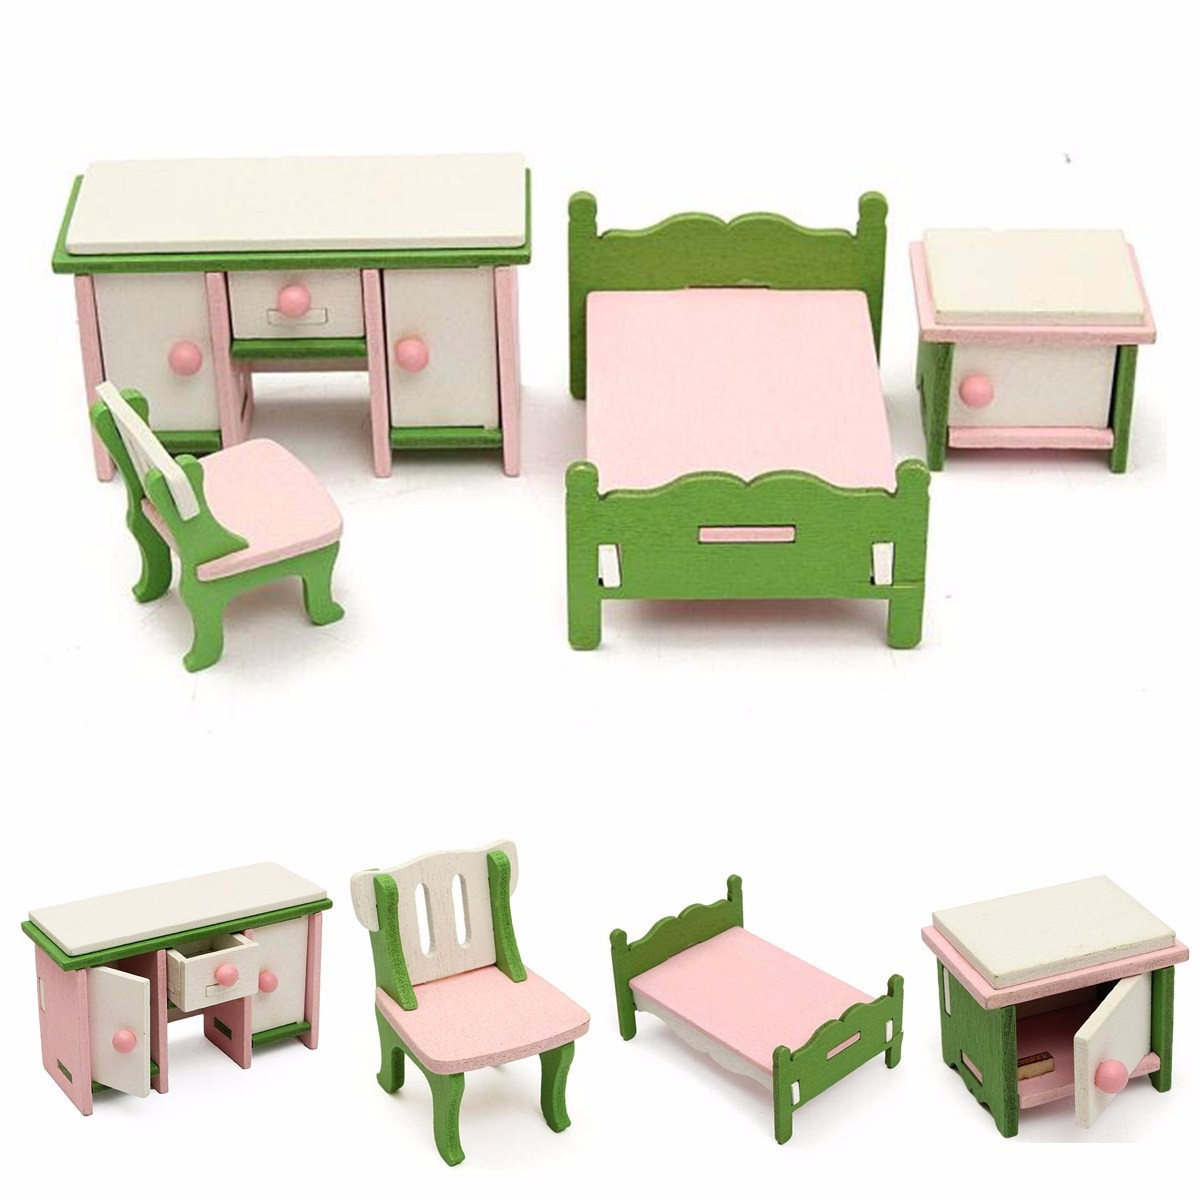 Kids Pretend Role Play Wooden Toy Dollhouse Bedroom Set Miniature Furniture